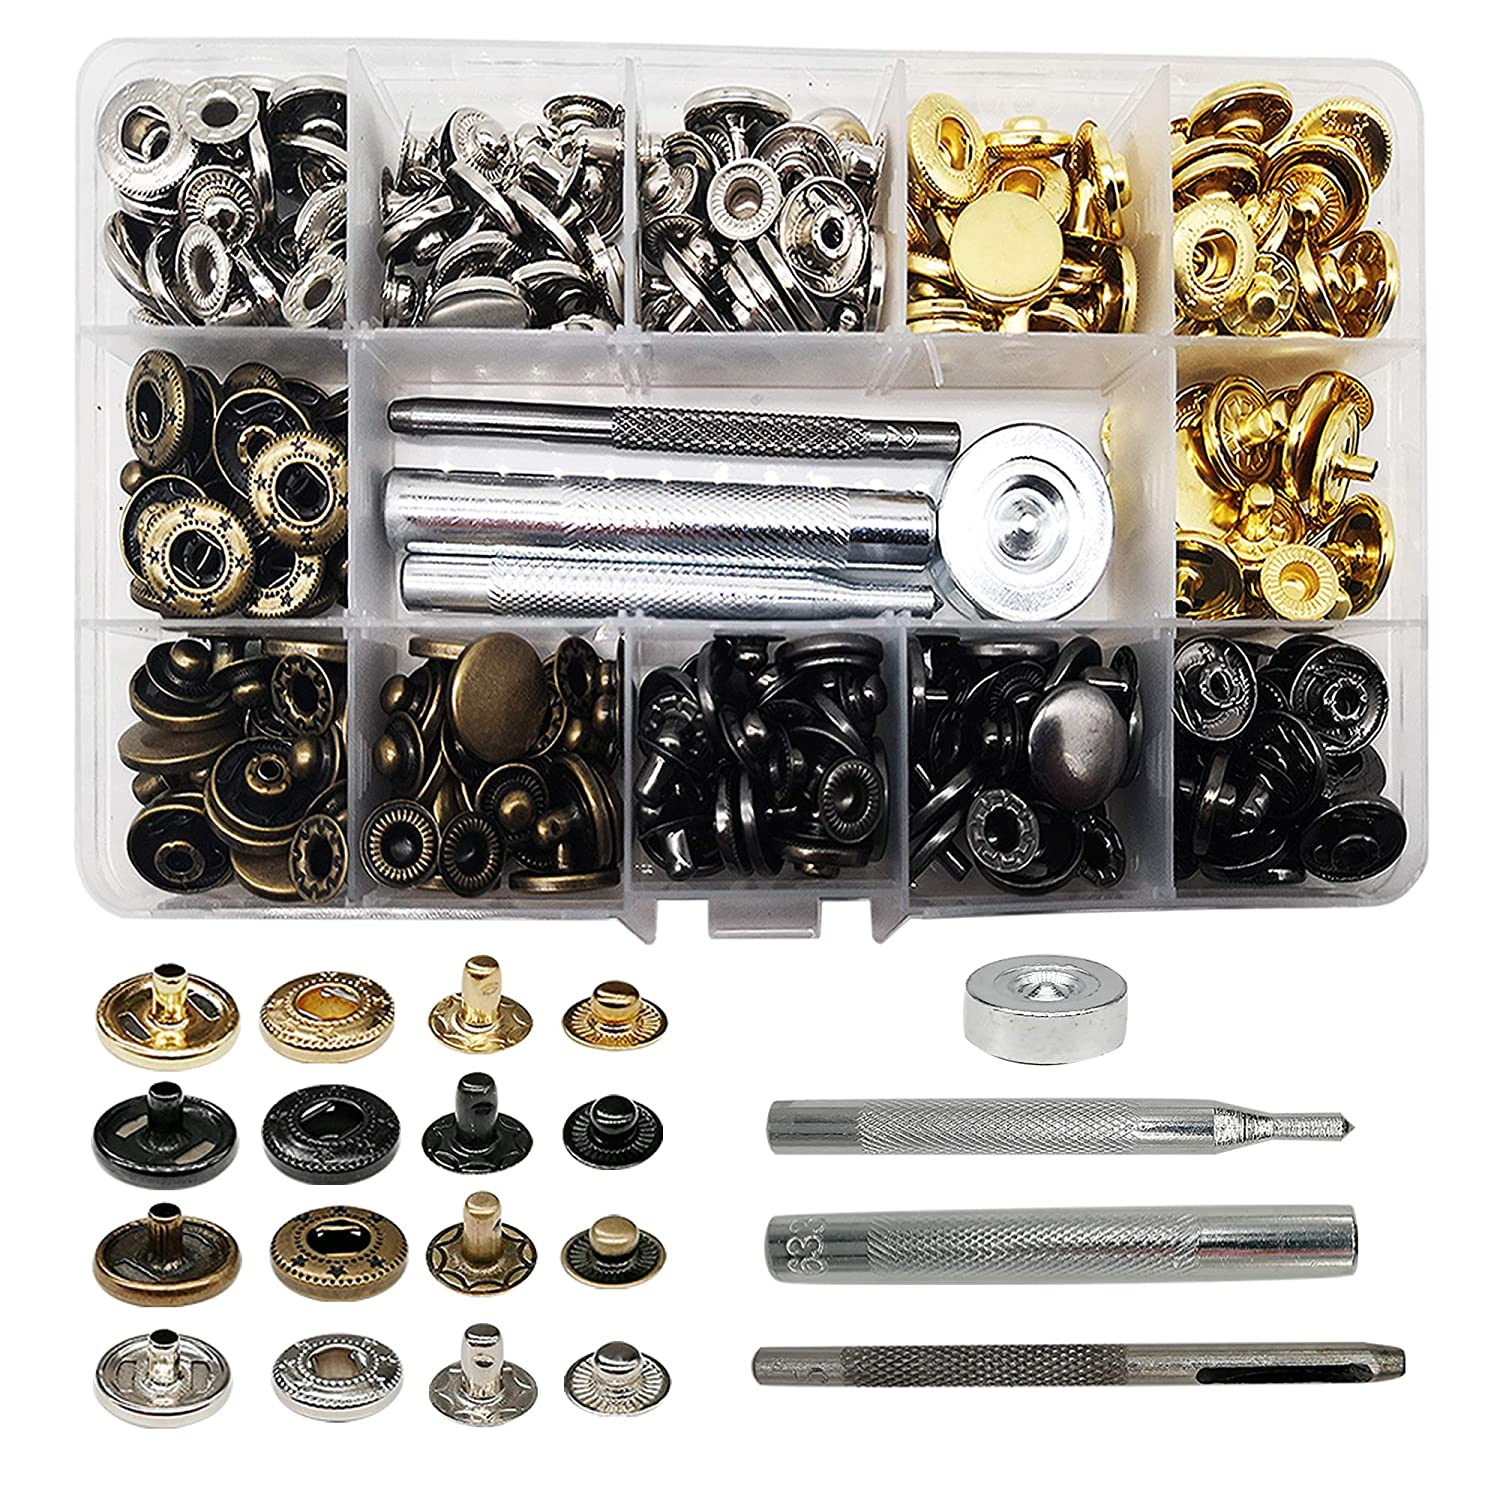 Jacket 4 Color Clothing Snaps Kit for Clothing Leather Fuman Forest 80 Sets Snap Fasteners Kit Jeans Wear Bracelet 15mm Metal Snap Buttons Press Studs with 4 Pieces Fixing Tools Bags